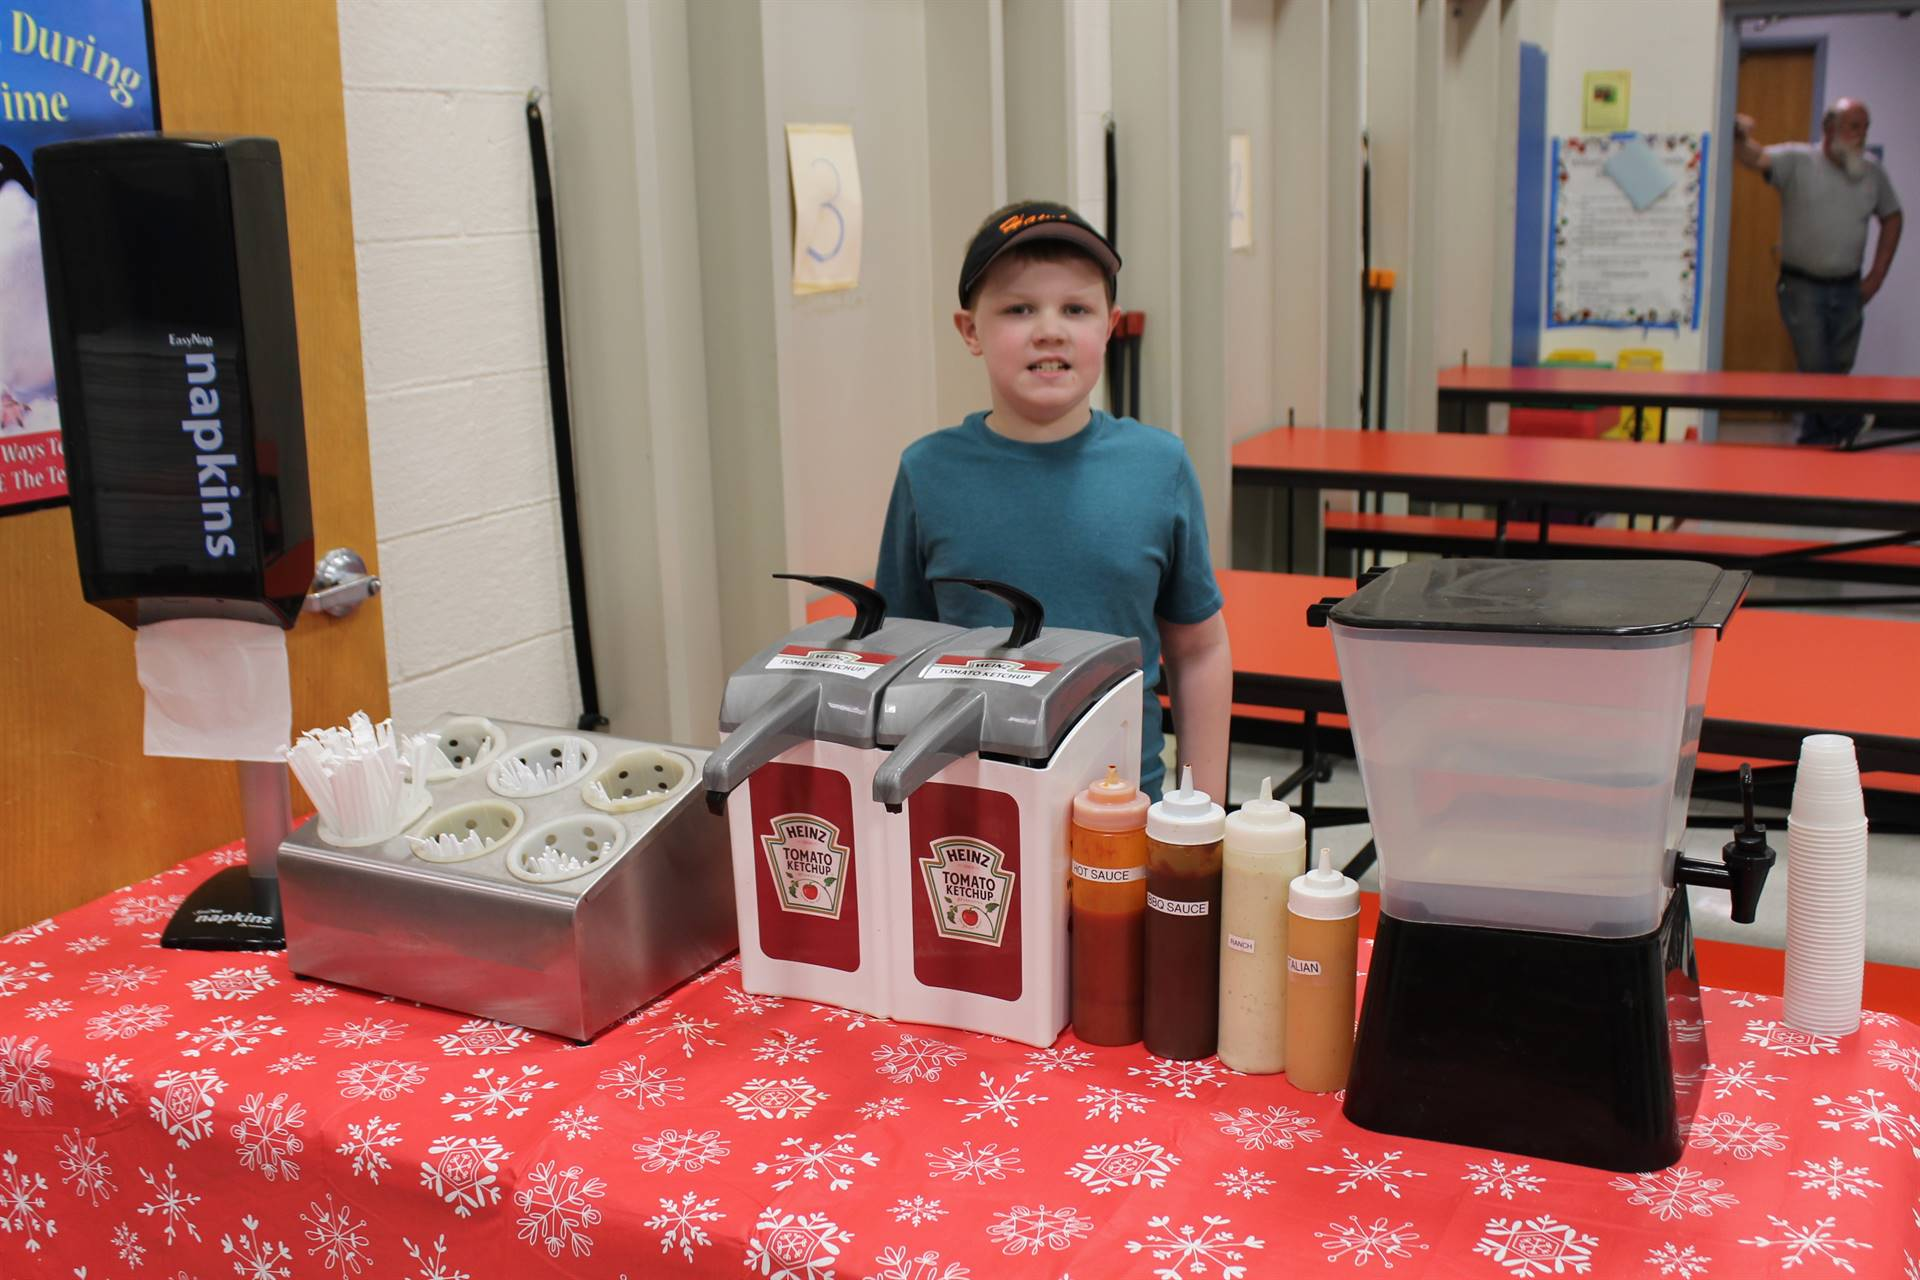 student at the condiment table in the cafeteria